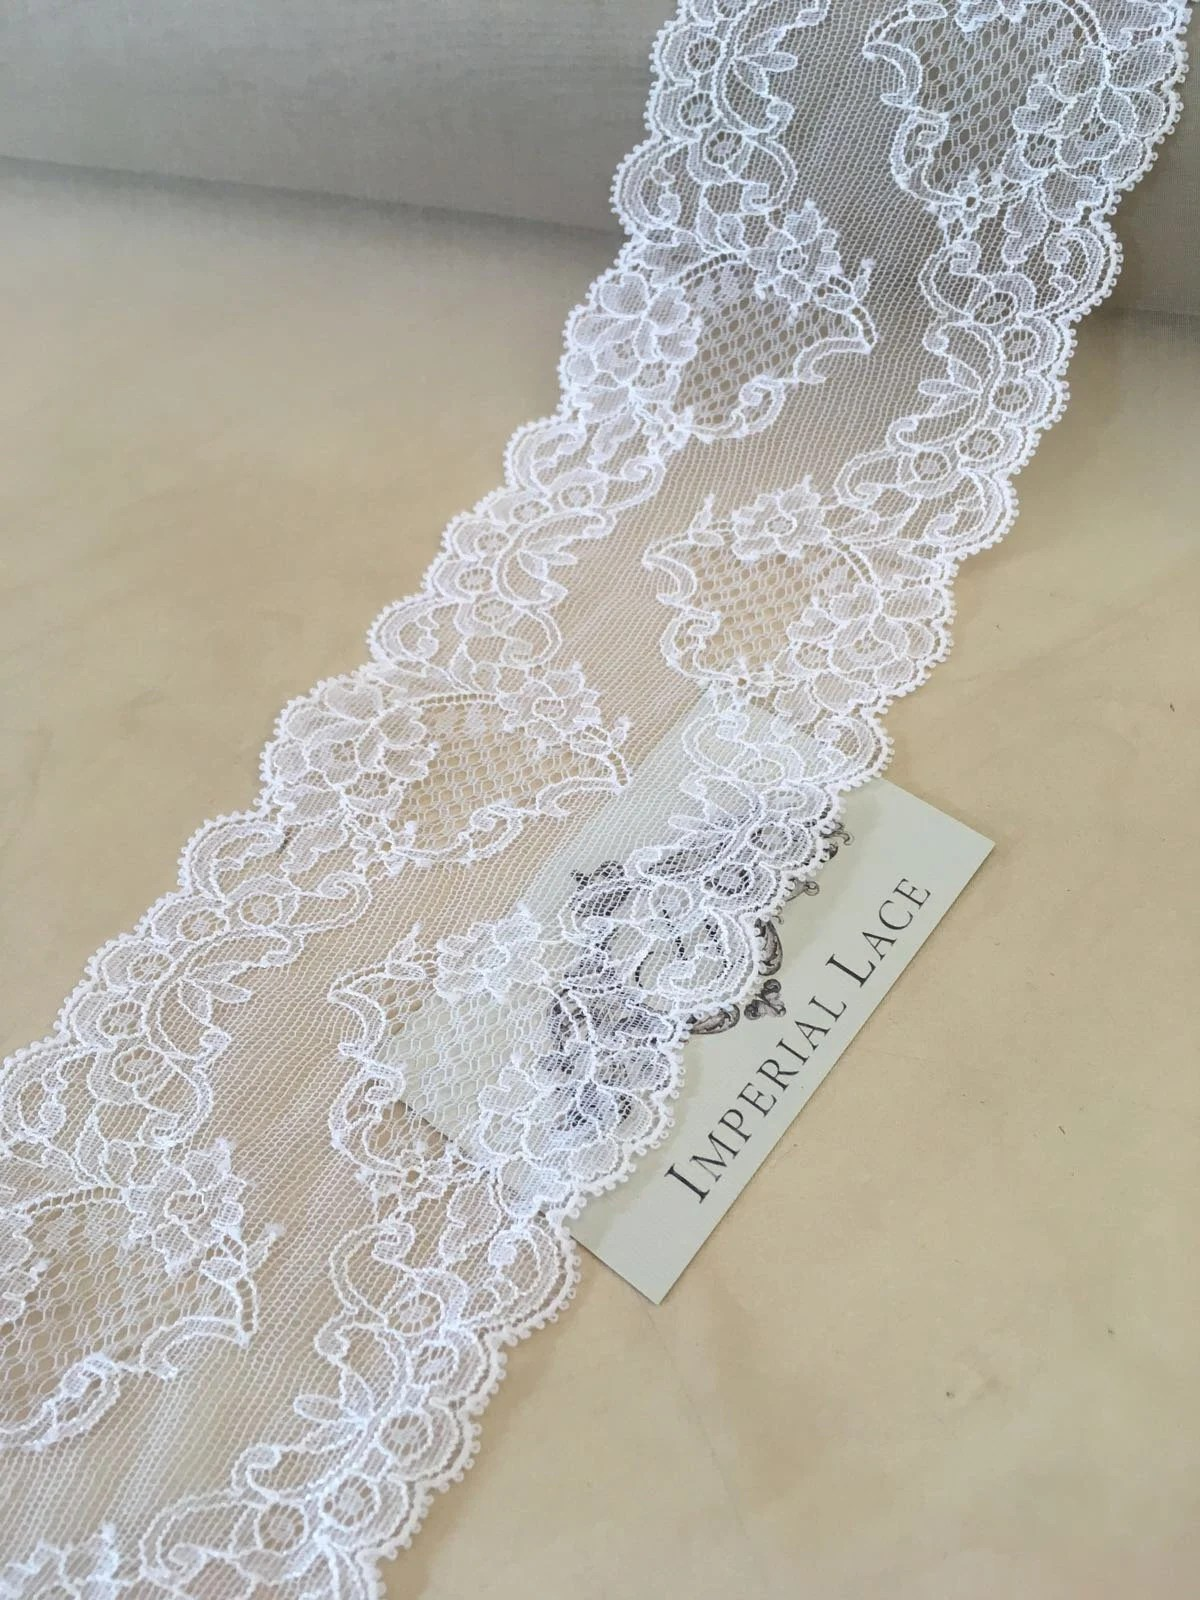 Stoff Spitze White Lace Trimming Chantilly Lace Trim Spitze Stoff Lace Fabric Bridal Lace Fabric Lace Trim White Lace Trim Mb00193